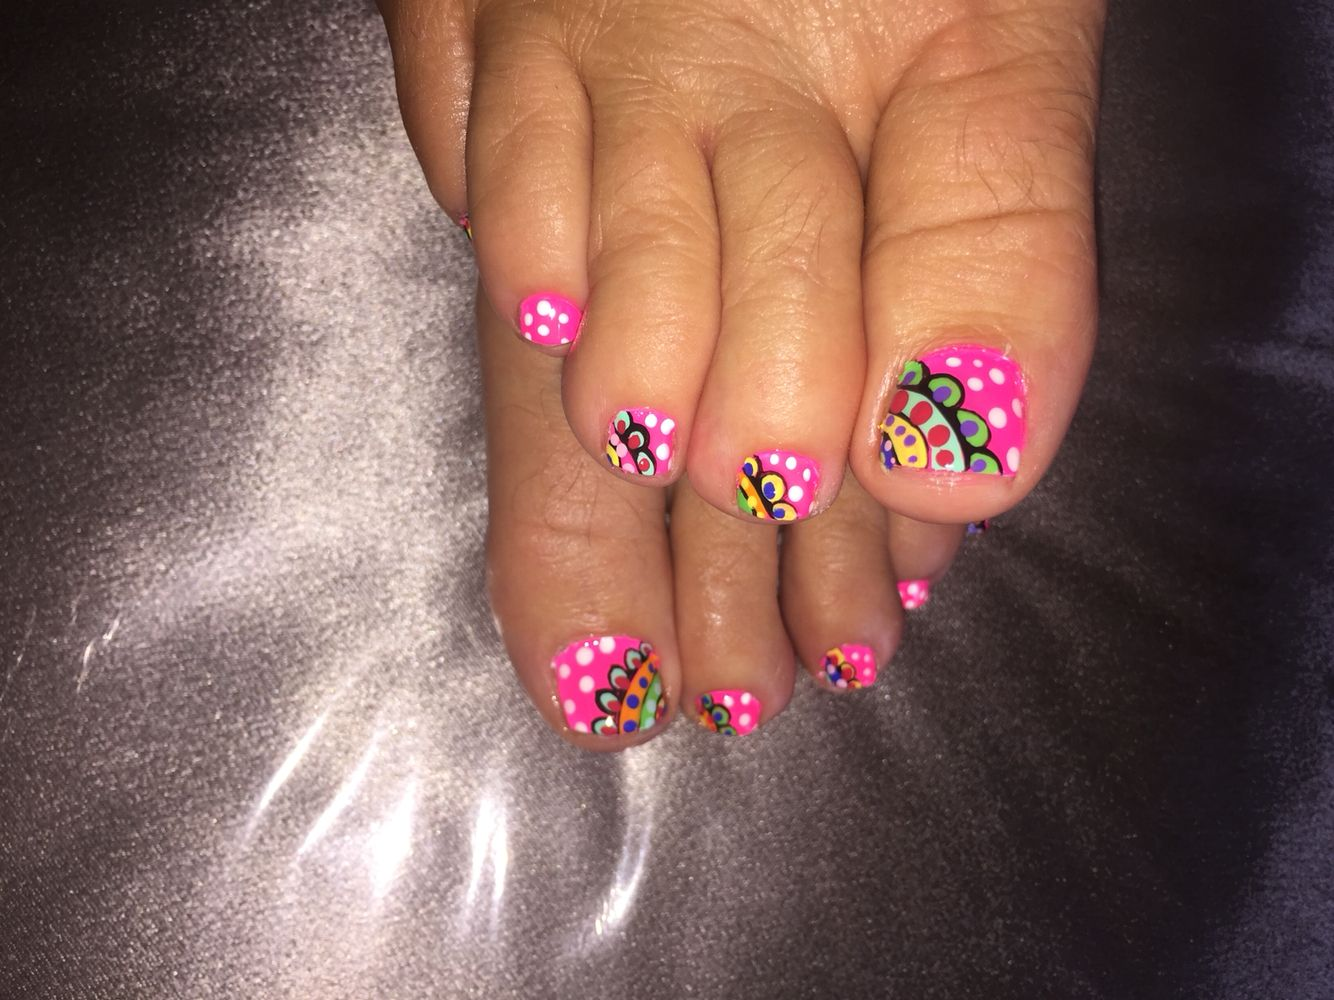 Pin by Shannon DeFord on NAILS & TOES | Pinterest | Toe nail designs ...